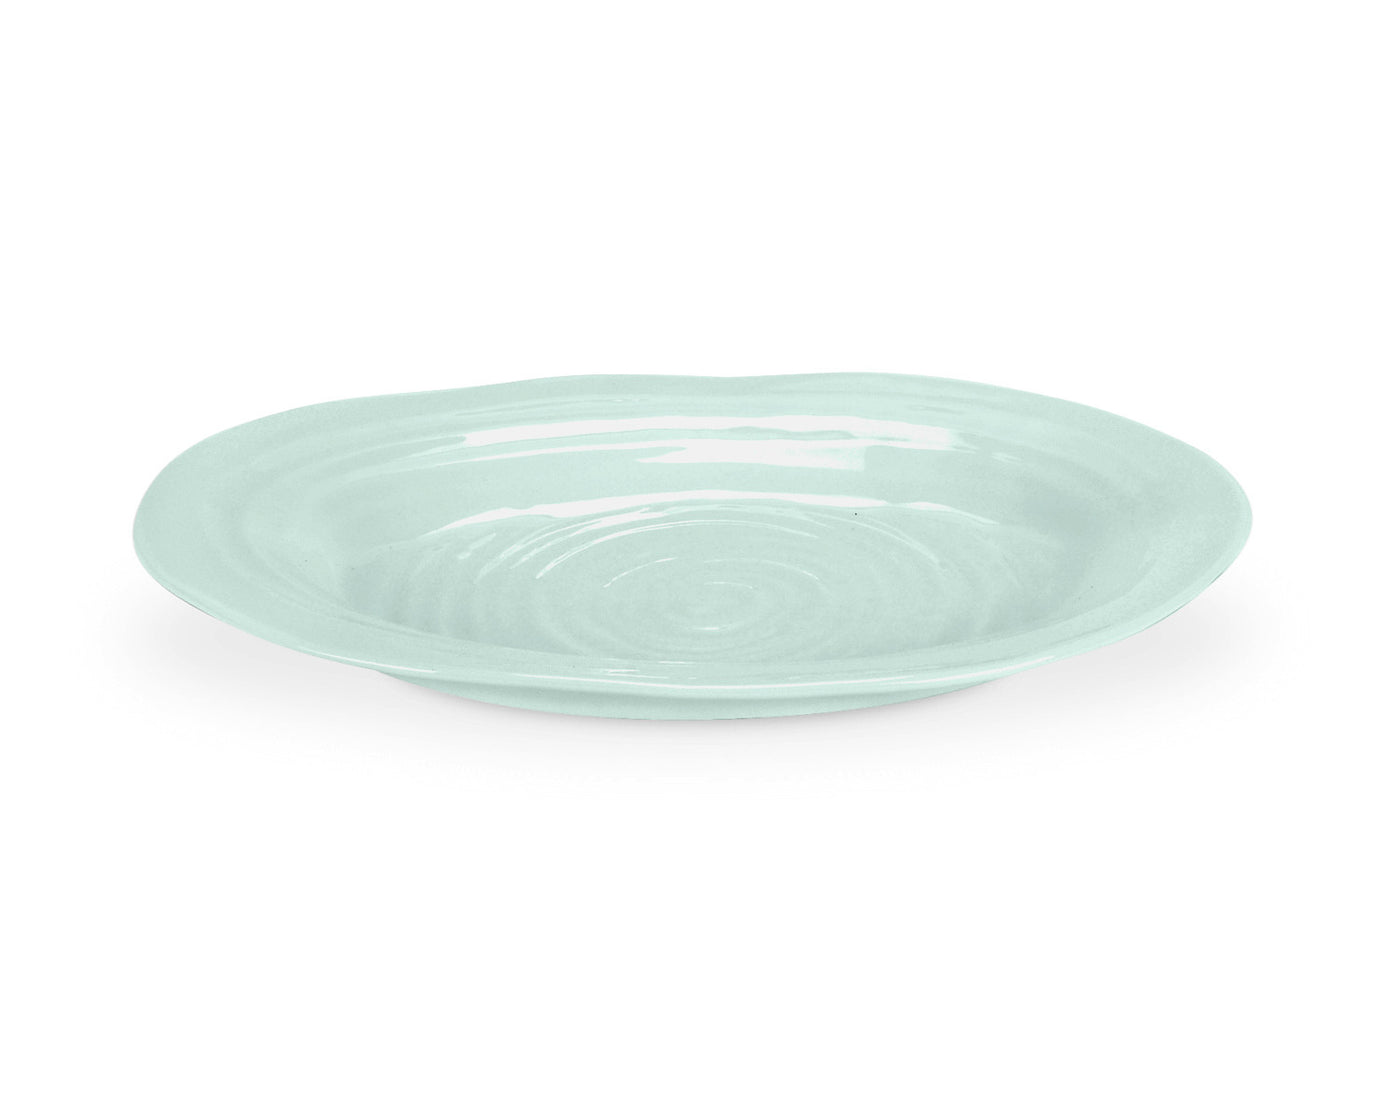 Celadon Collection Small Oval Platter